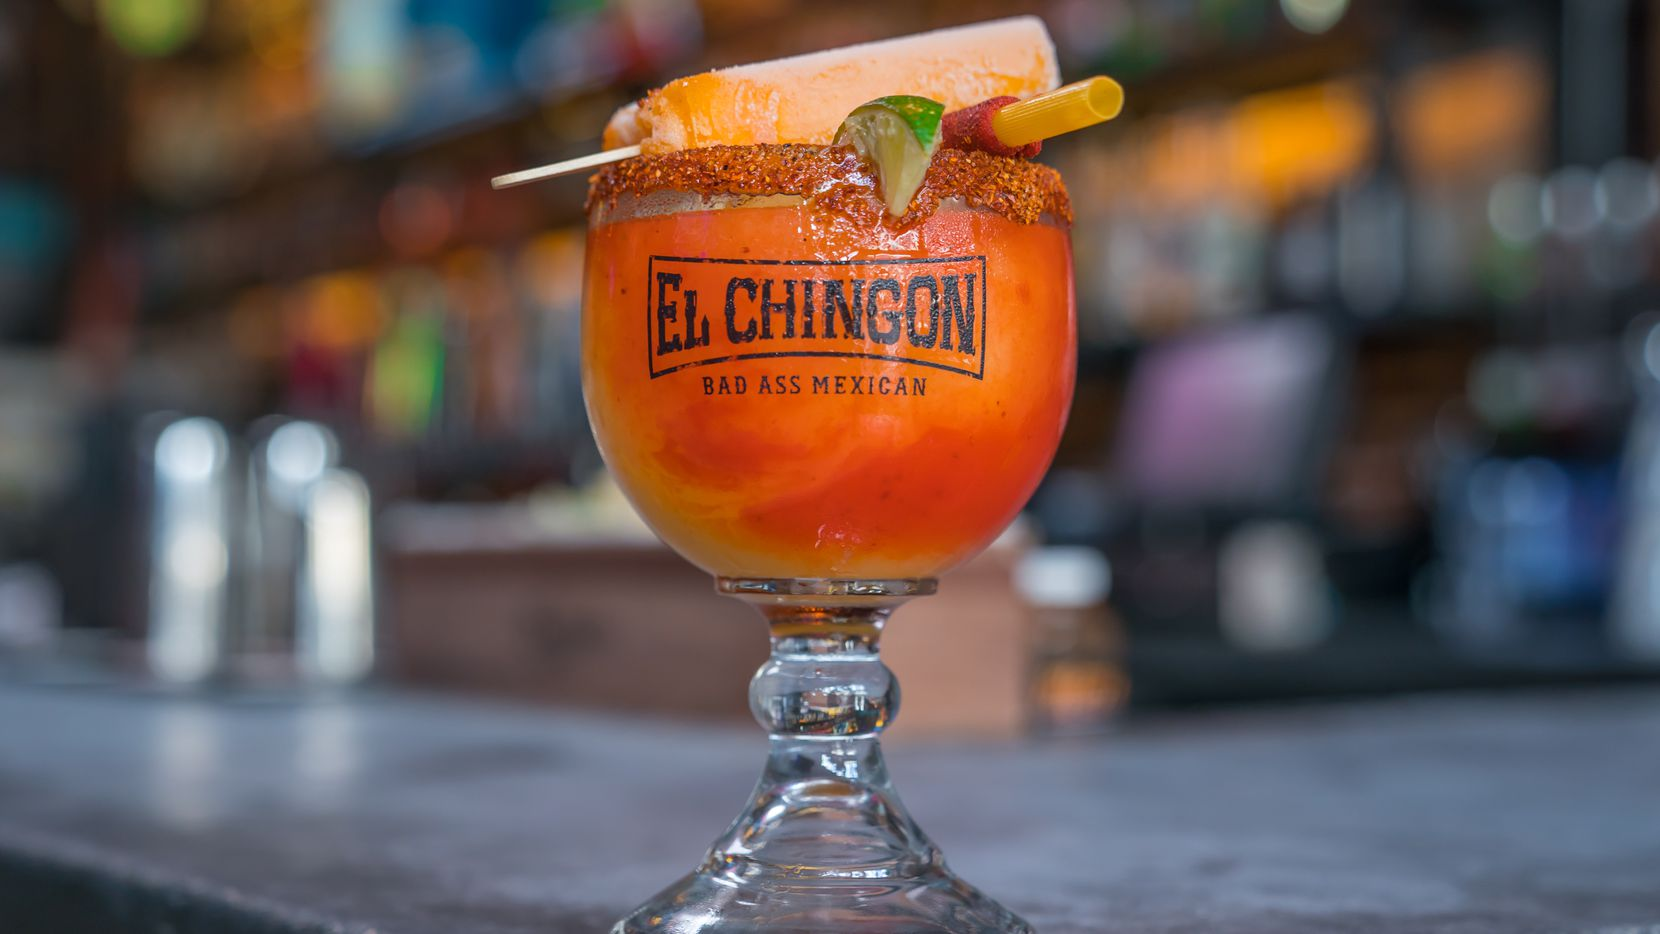 El Chingon restaurant and bar to open in Fort Worth.